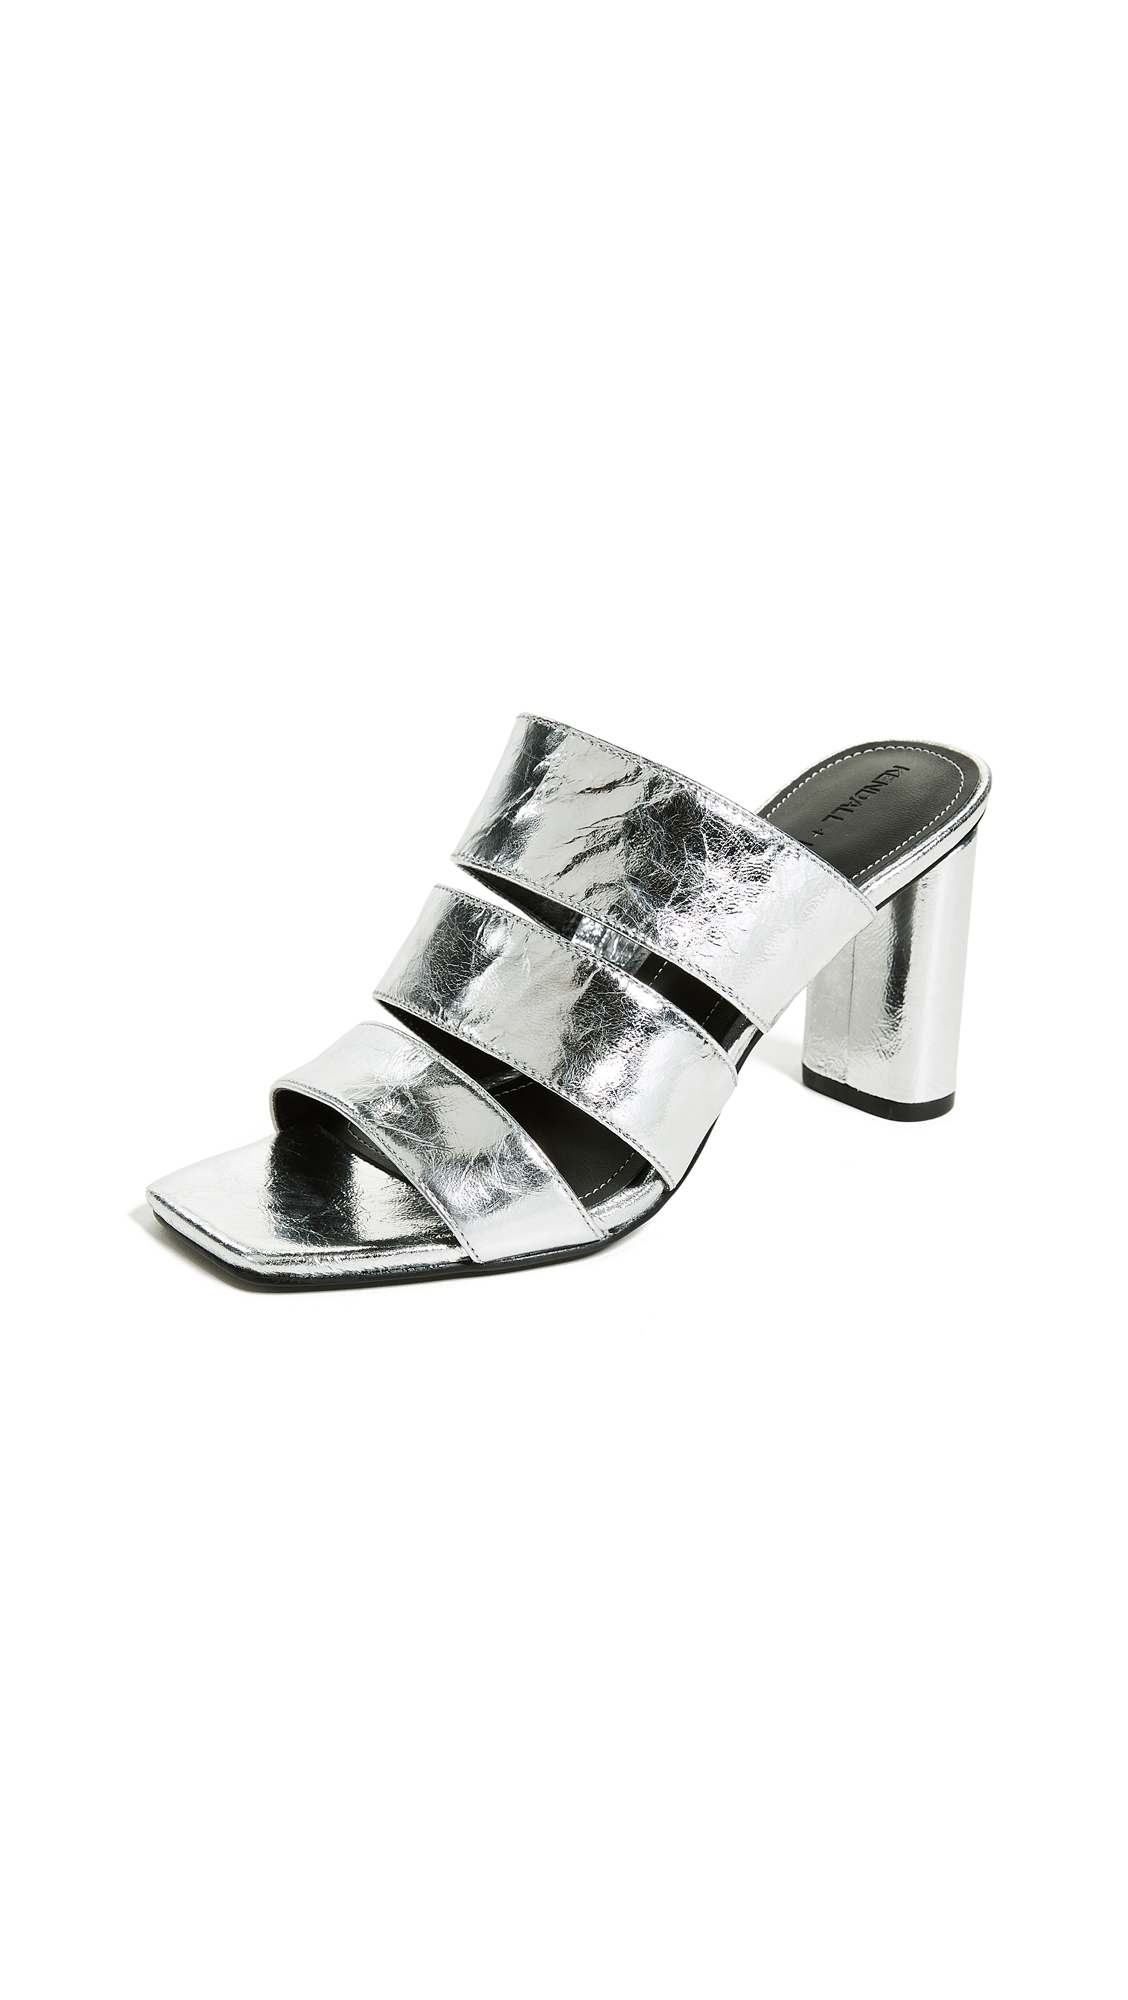 Metallic Leather Sandals, Silver